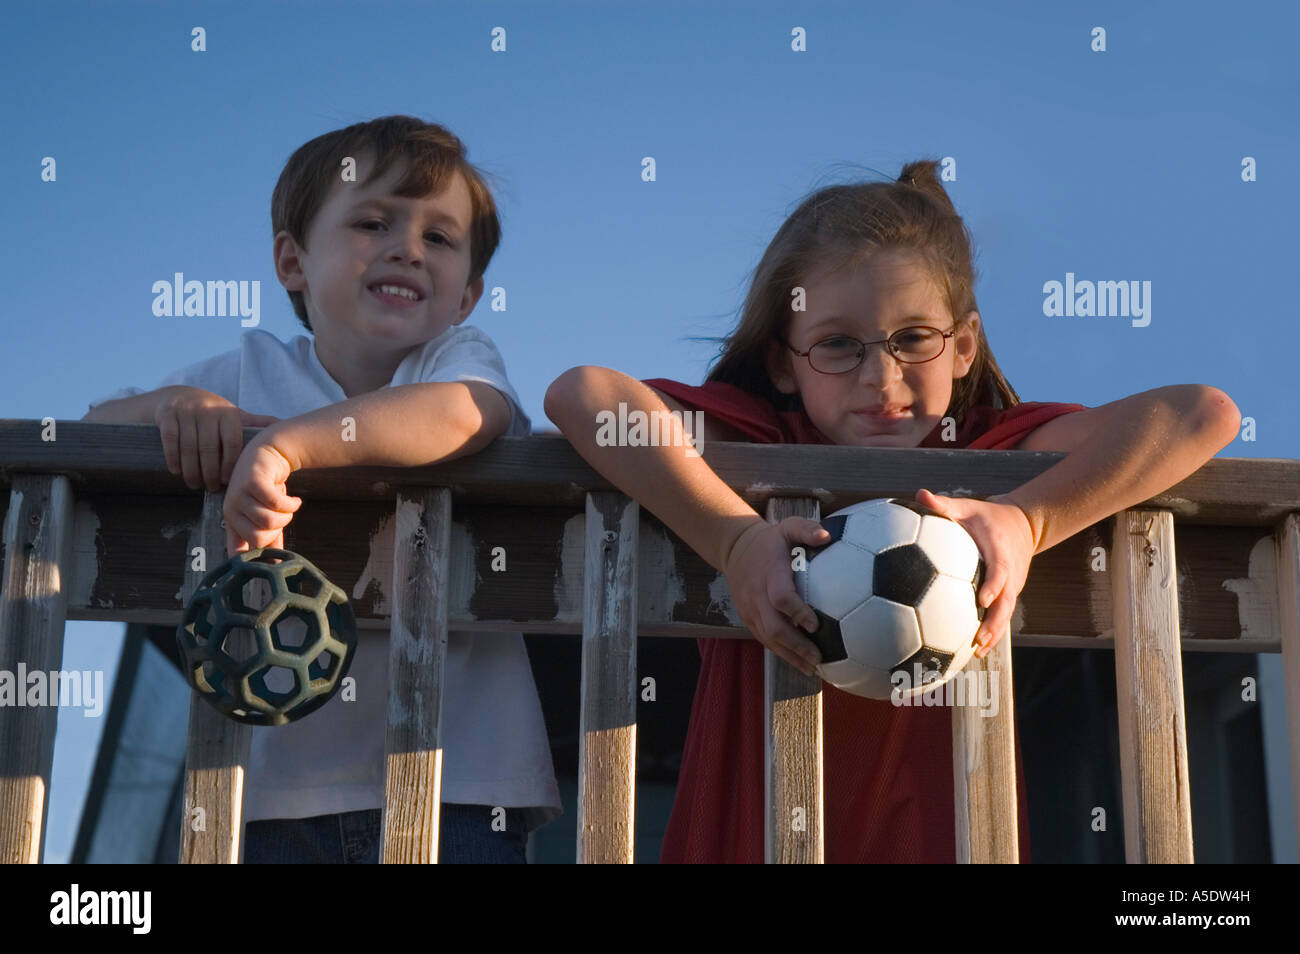 Sibling Rivalry...Let's play ball! Stock Photo